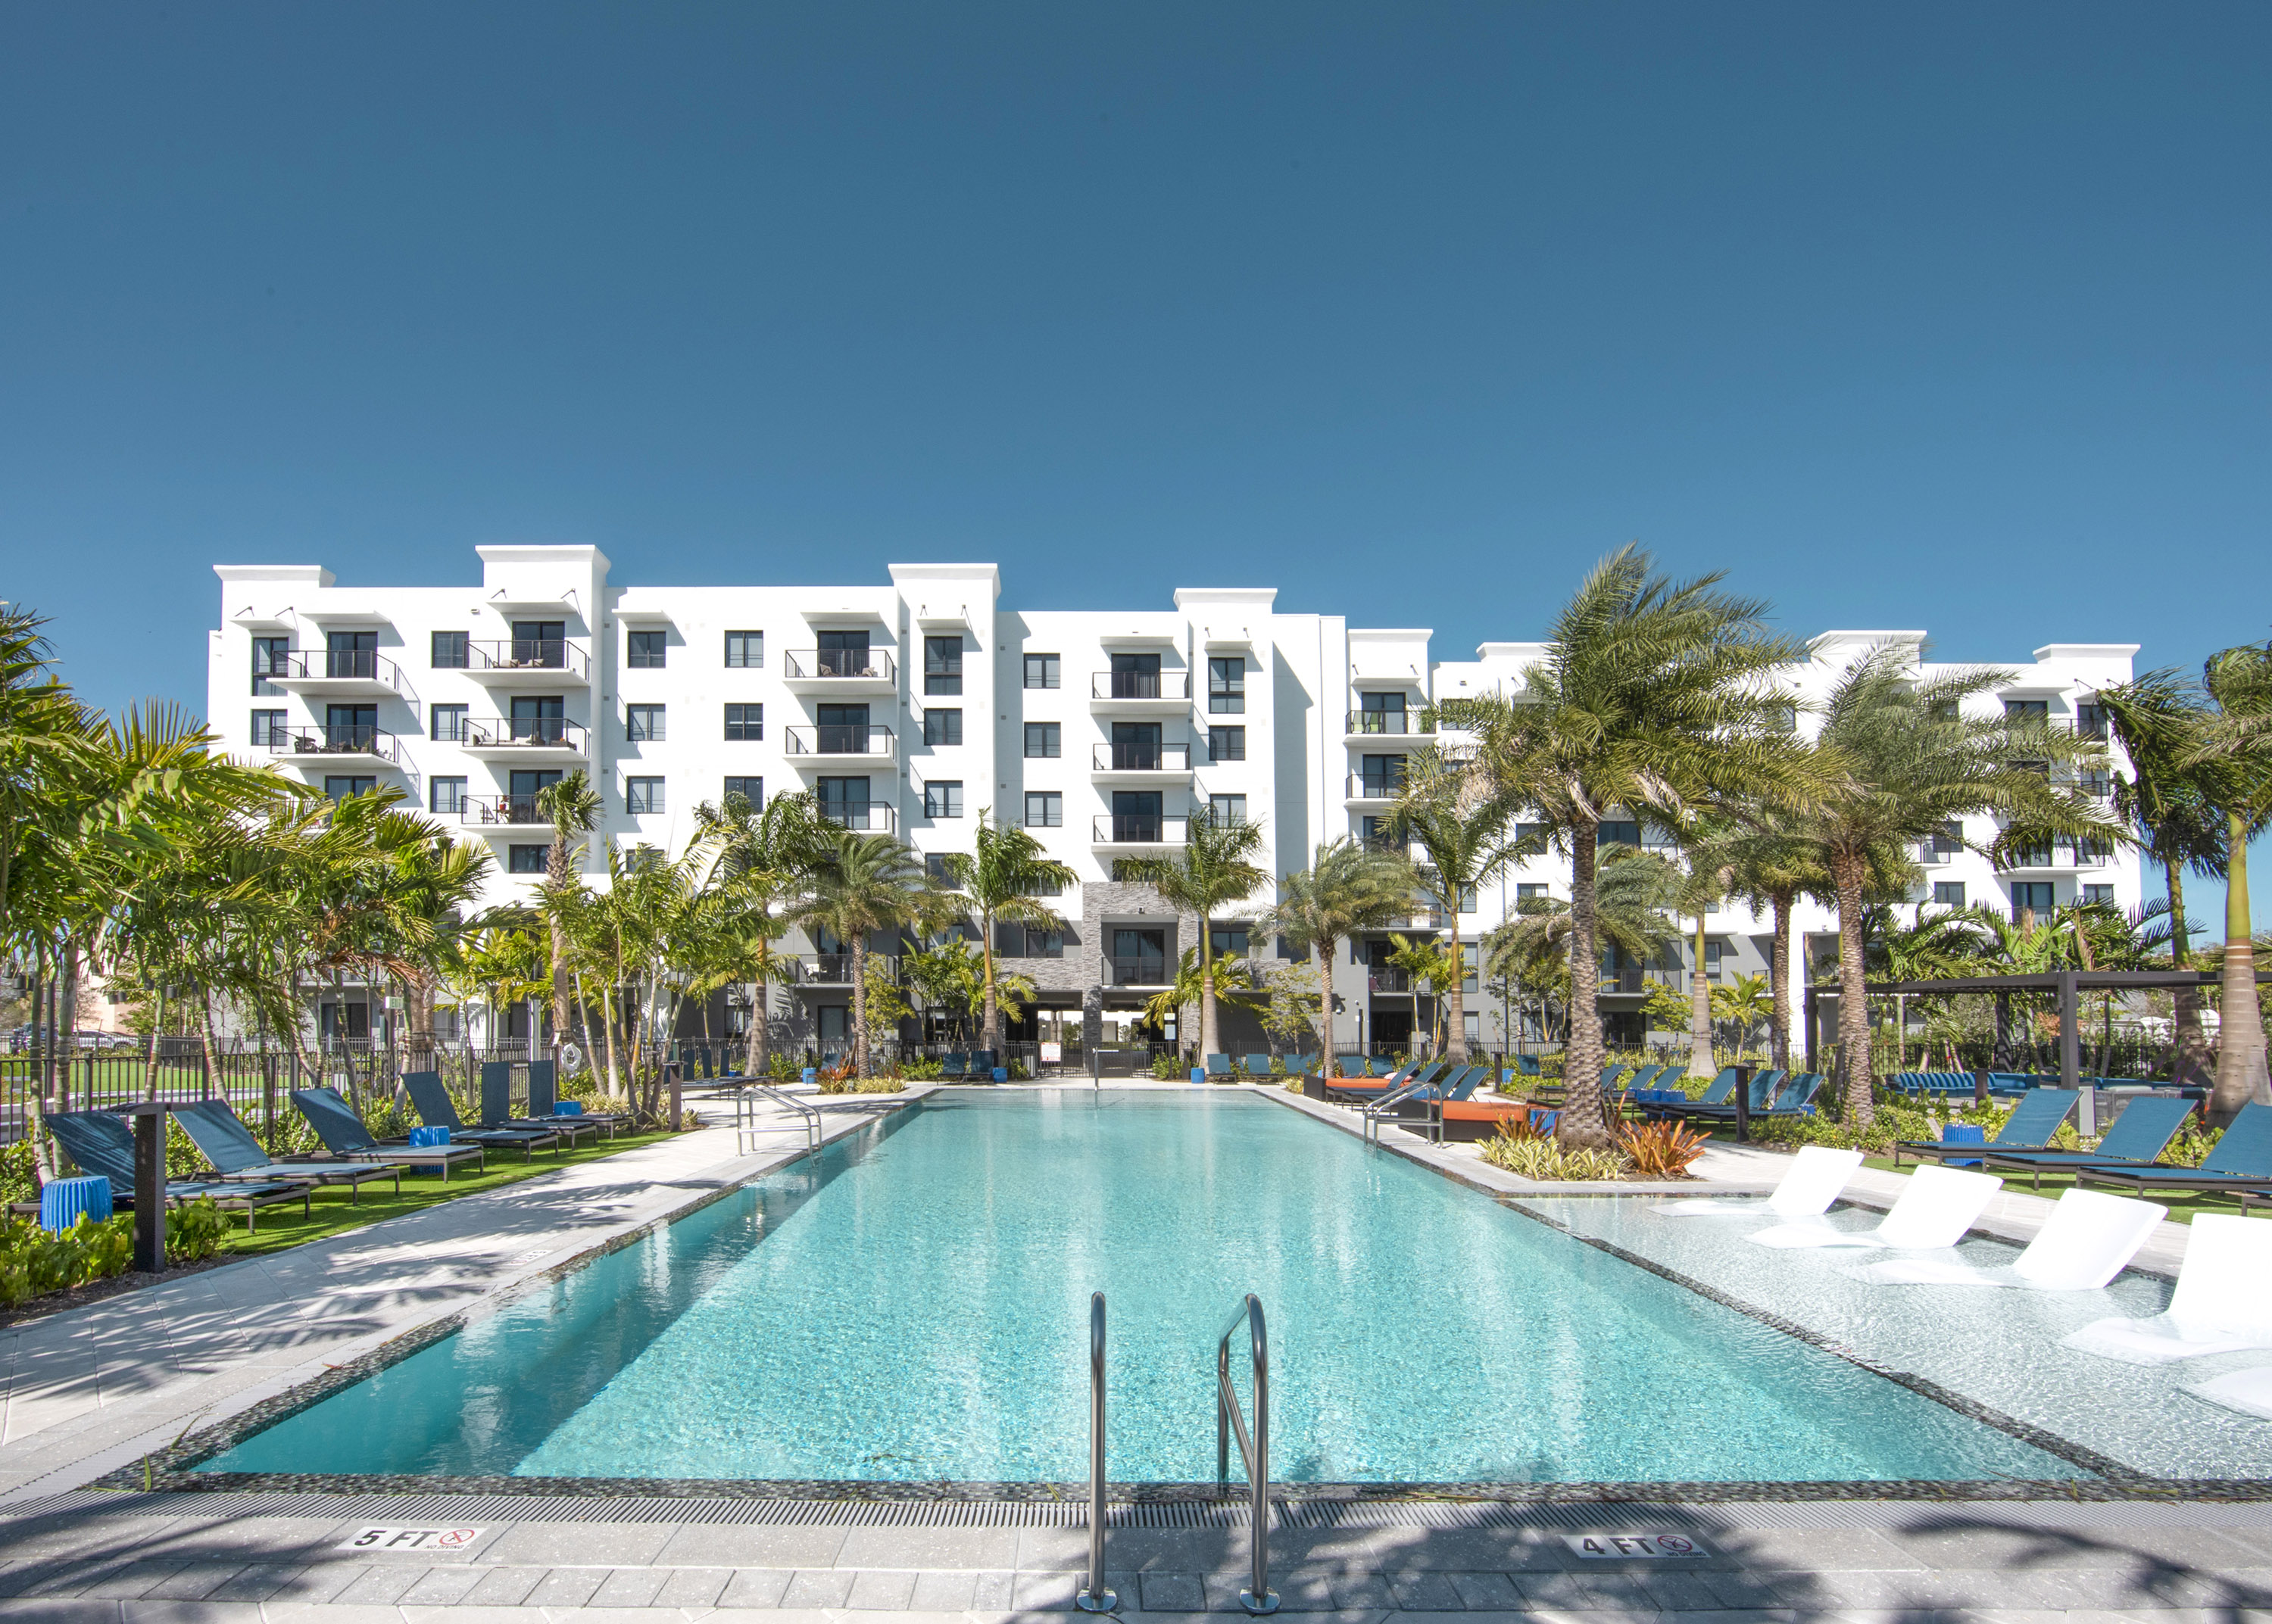 sanctuary pool surrounded by palm trees and Sanctuary Doral apartments behind